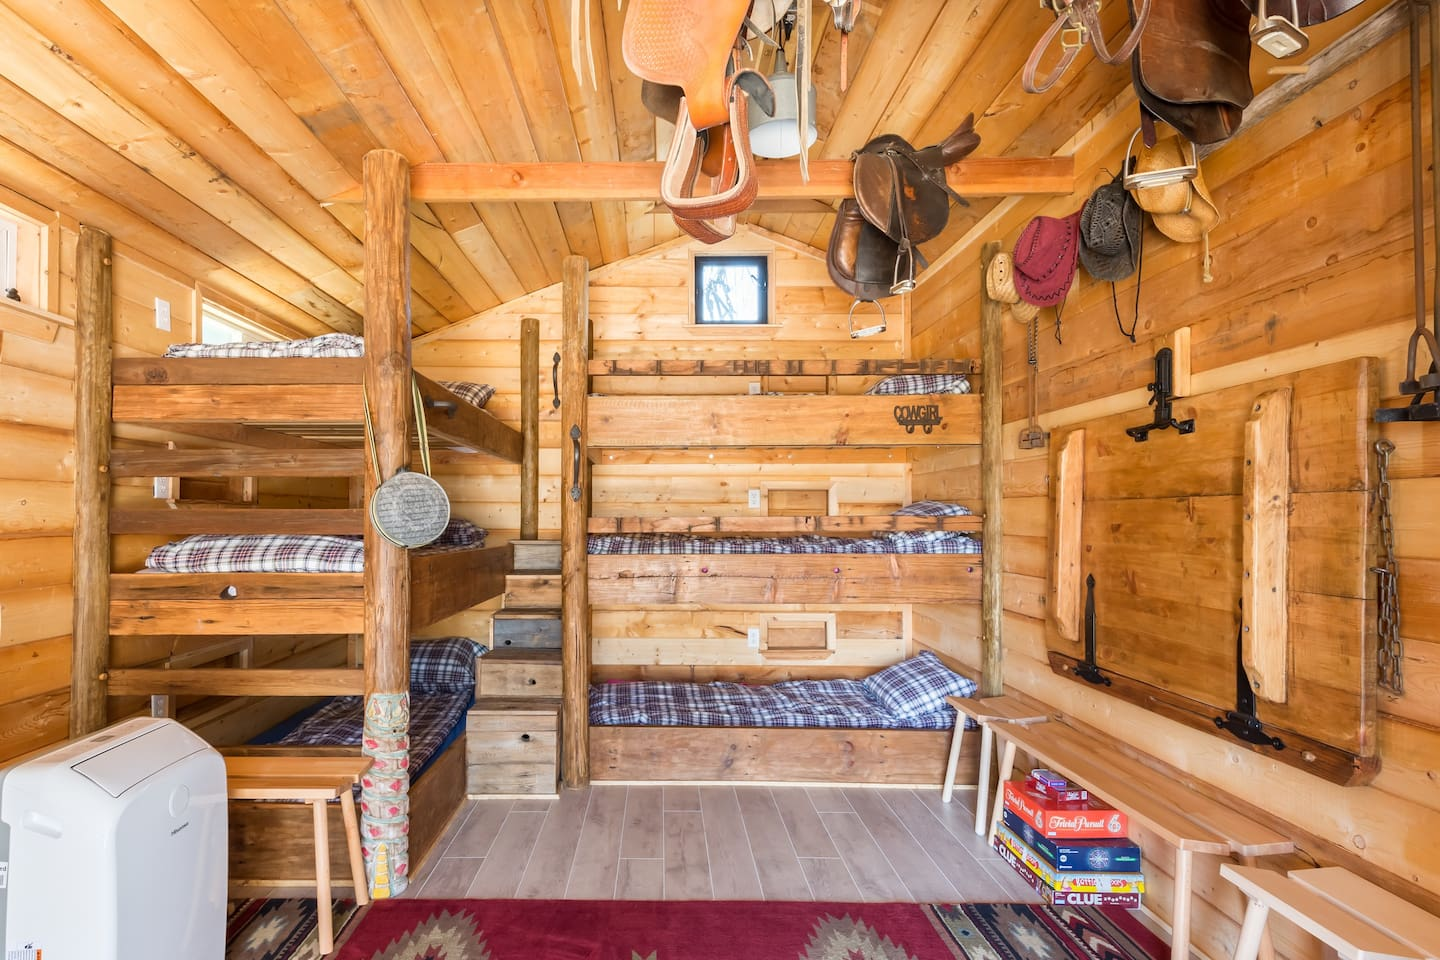 Howdy! Welcome to The Bunkhouse at Capability Ranch. Bed down for the night and get cozy in our super comfy triple bunks.